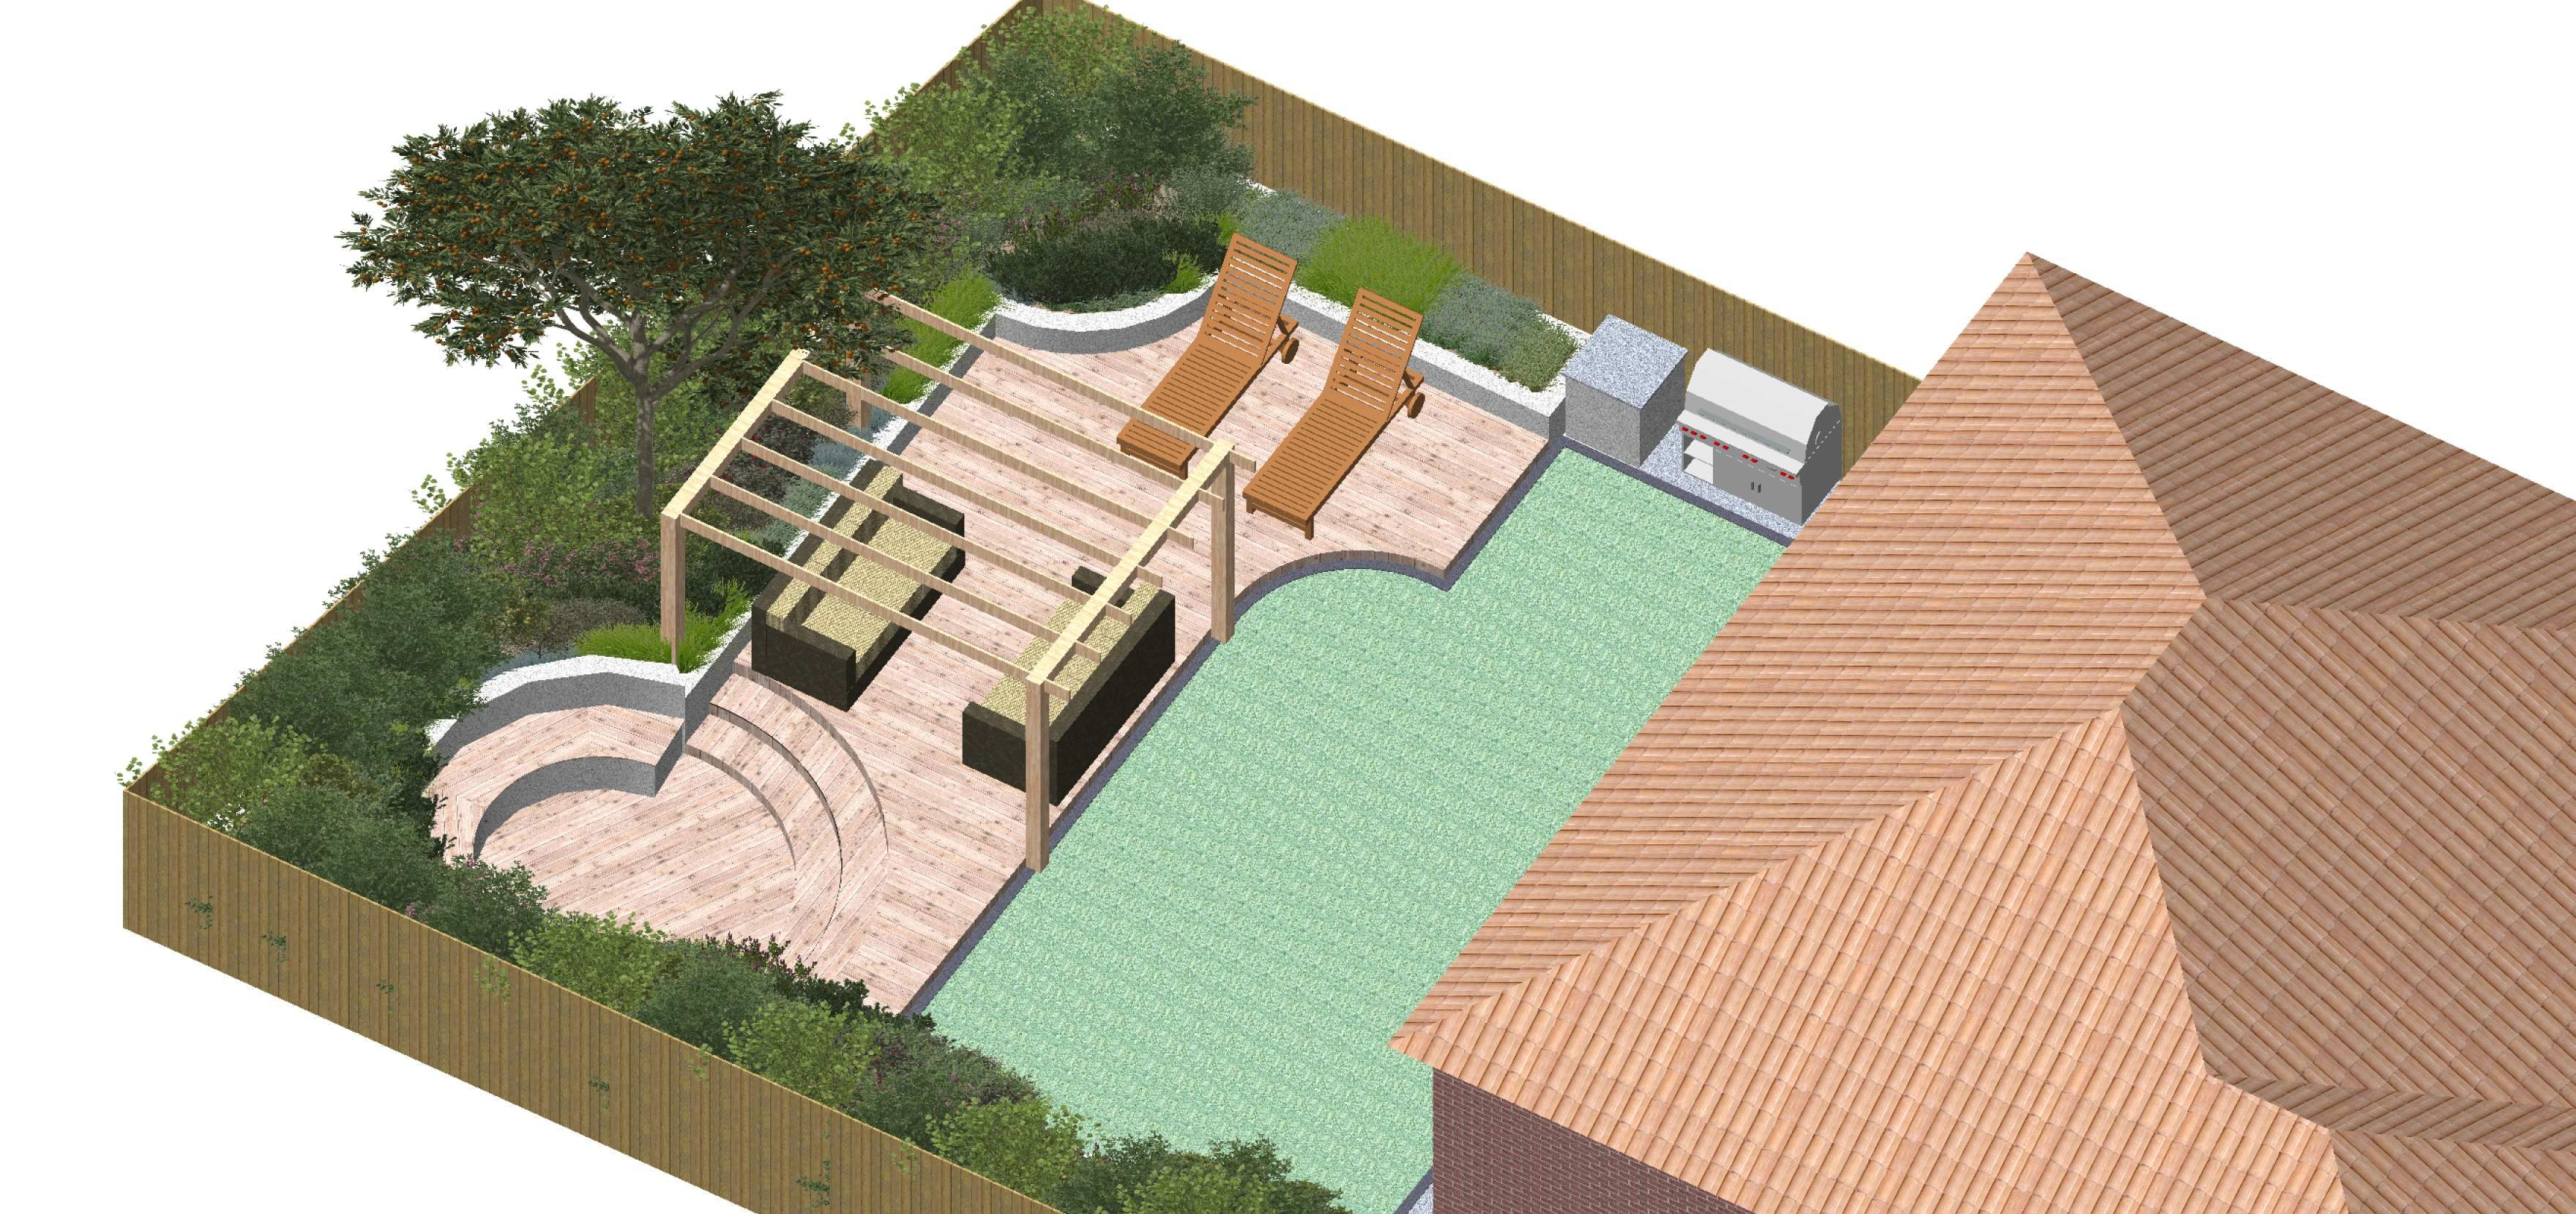 3 d cad model of small contemporary family garden in egham surrey